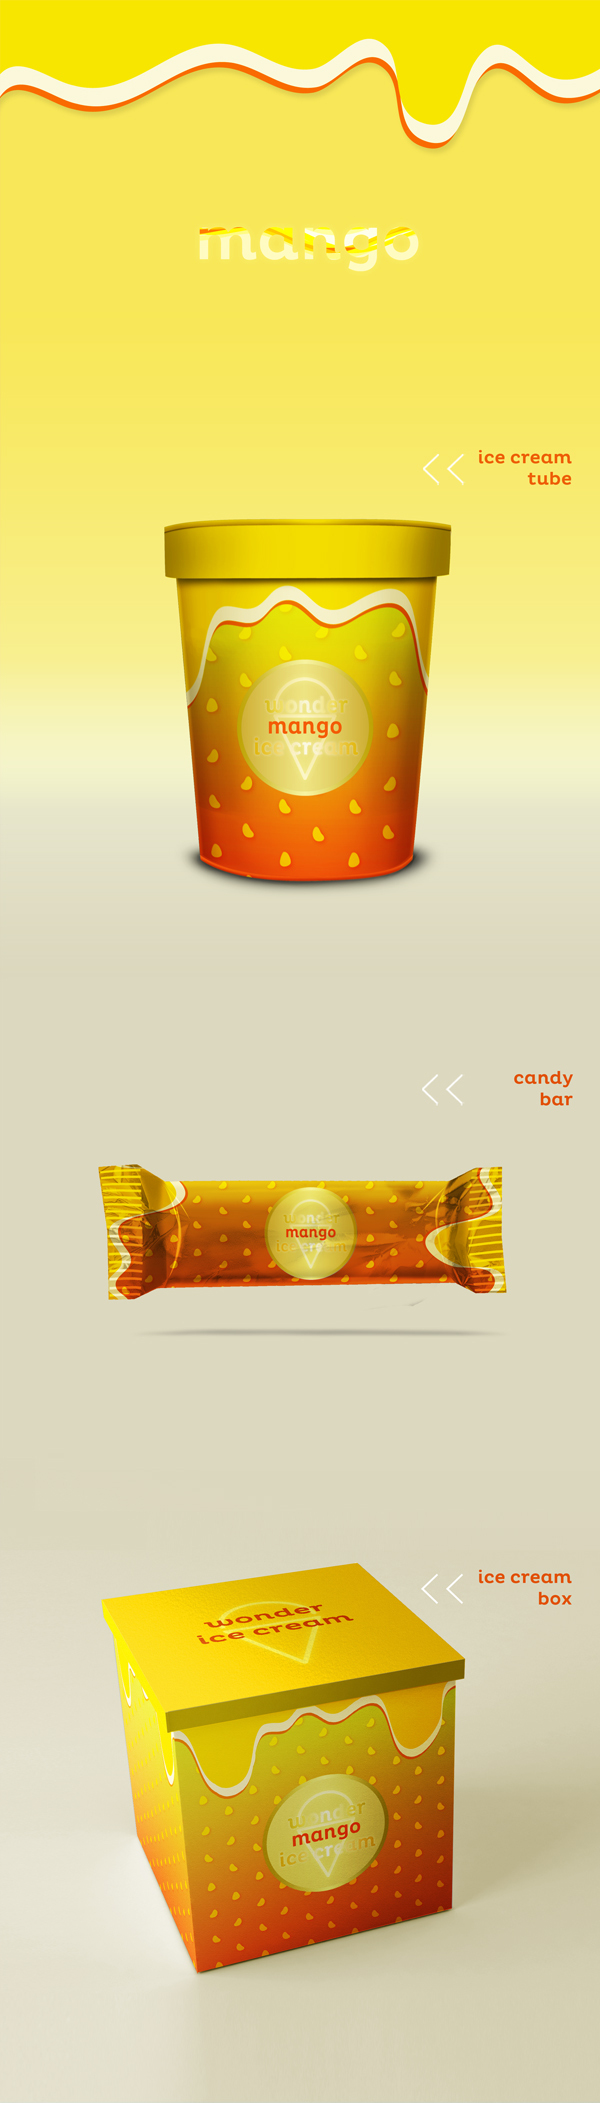 Mango_icecream_packaging